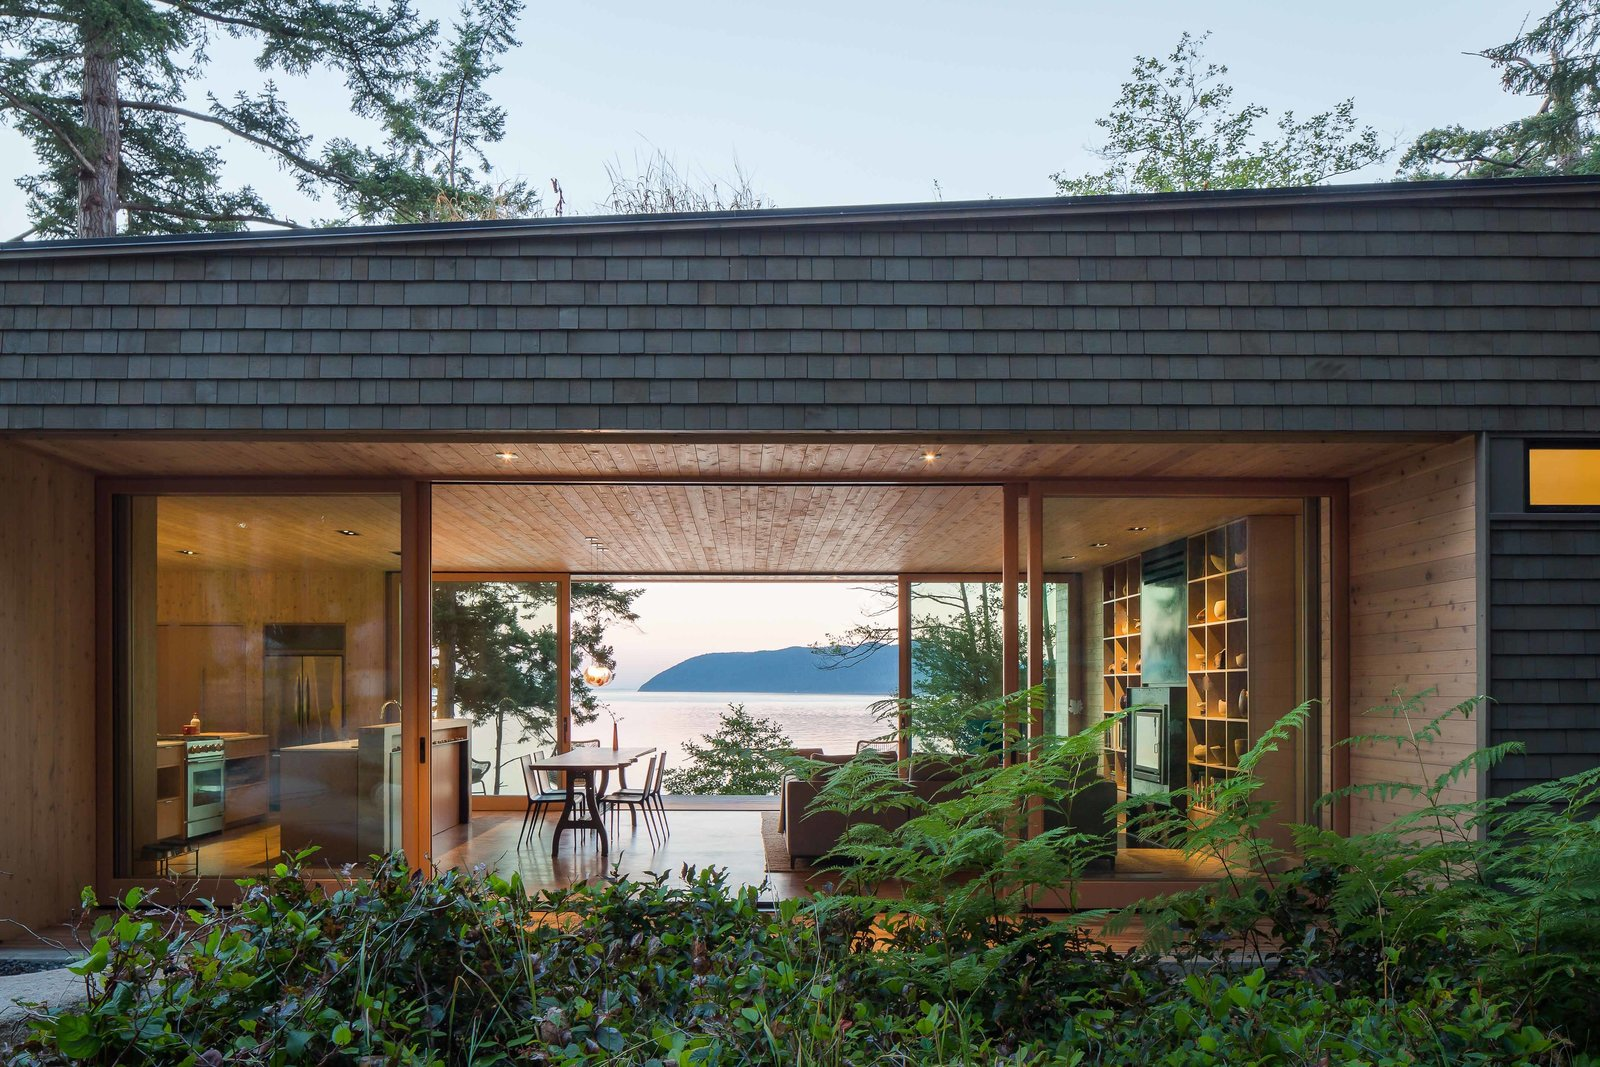 """""""The home is quite small, but designed in such a way that you don't feel it,"""" Herrin says. Lift-slide openings by Quantum Windows & Doors, which were fabricated fewer than 50 miles from the house, make the main living space seem larger. Tagged: Exterior, Shrubs, Wood Siding Material, Cabin Building Type, and House.  San Juan Islands Residence by Kelly Dawson"""